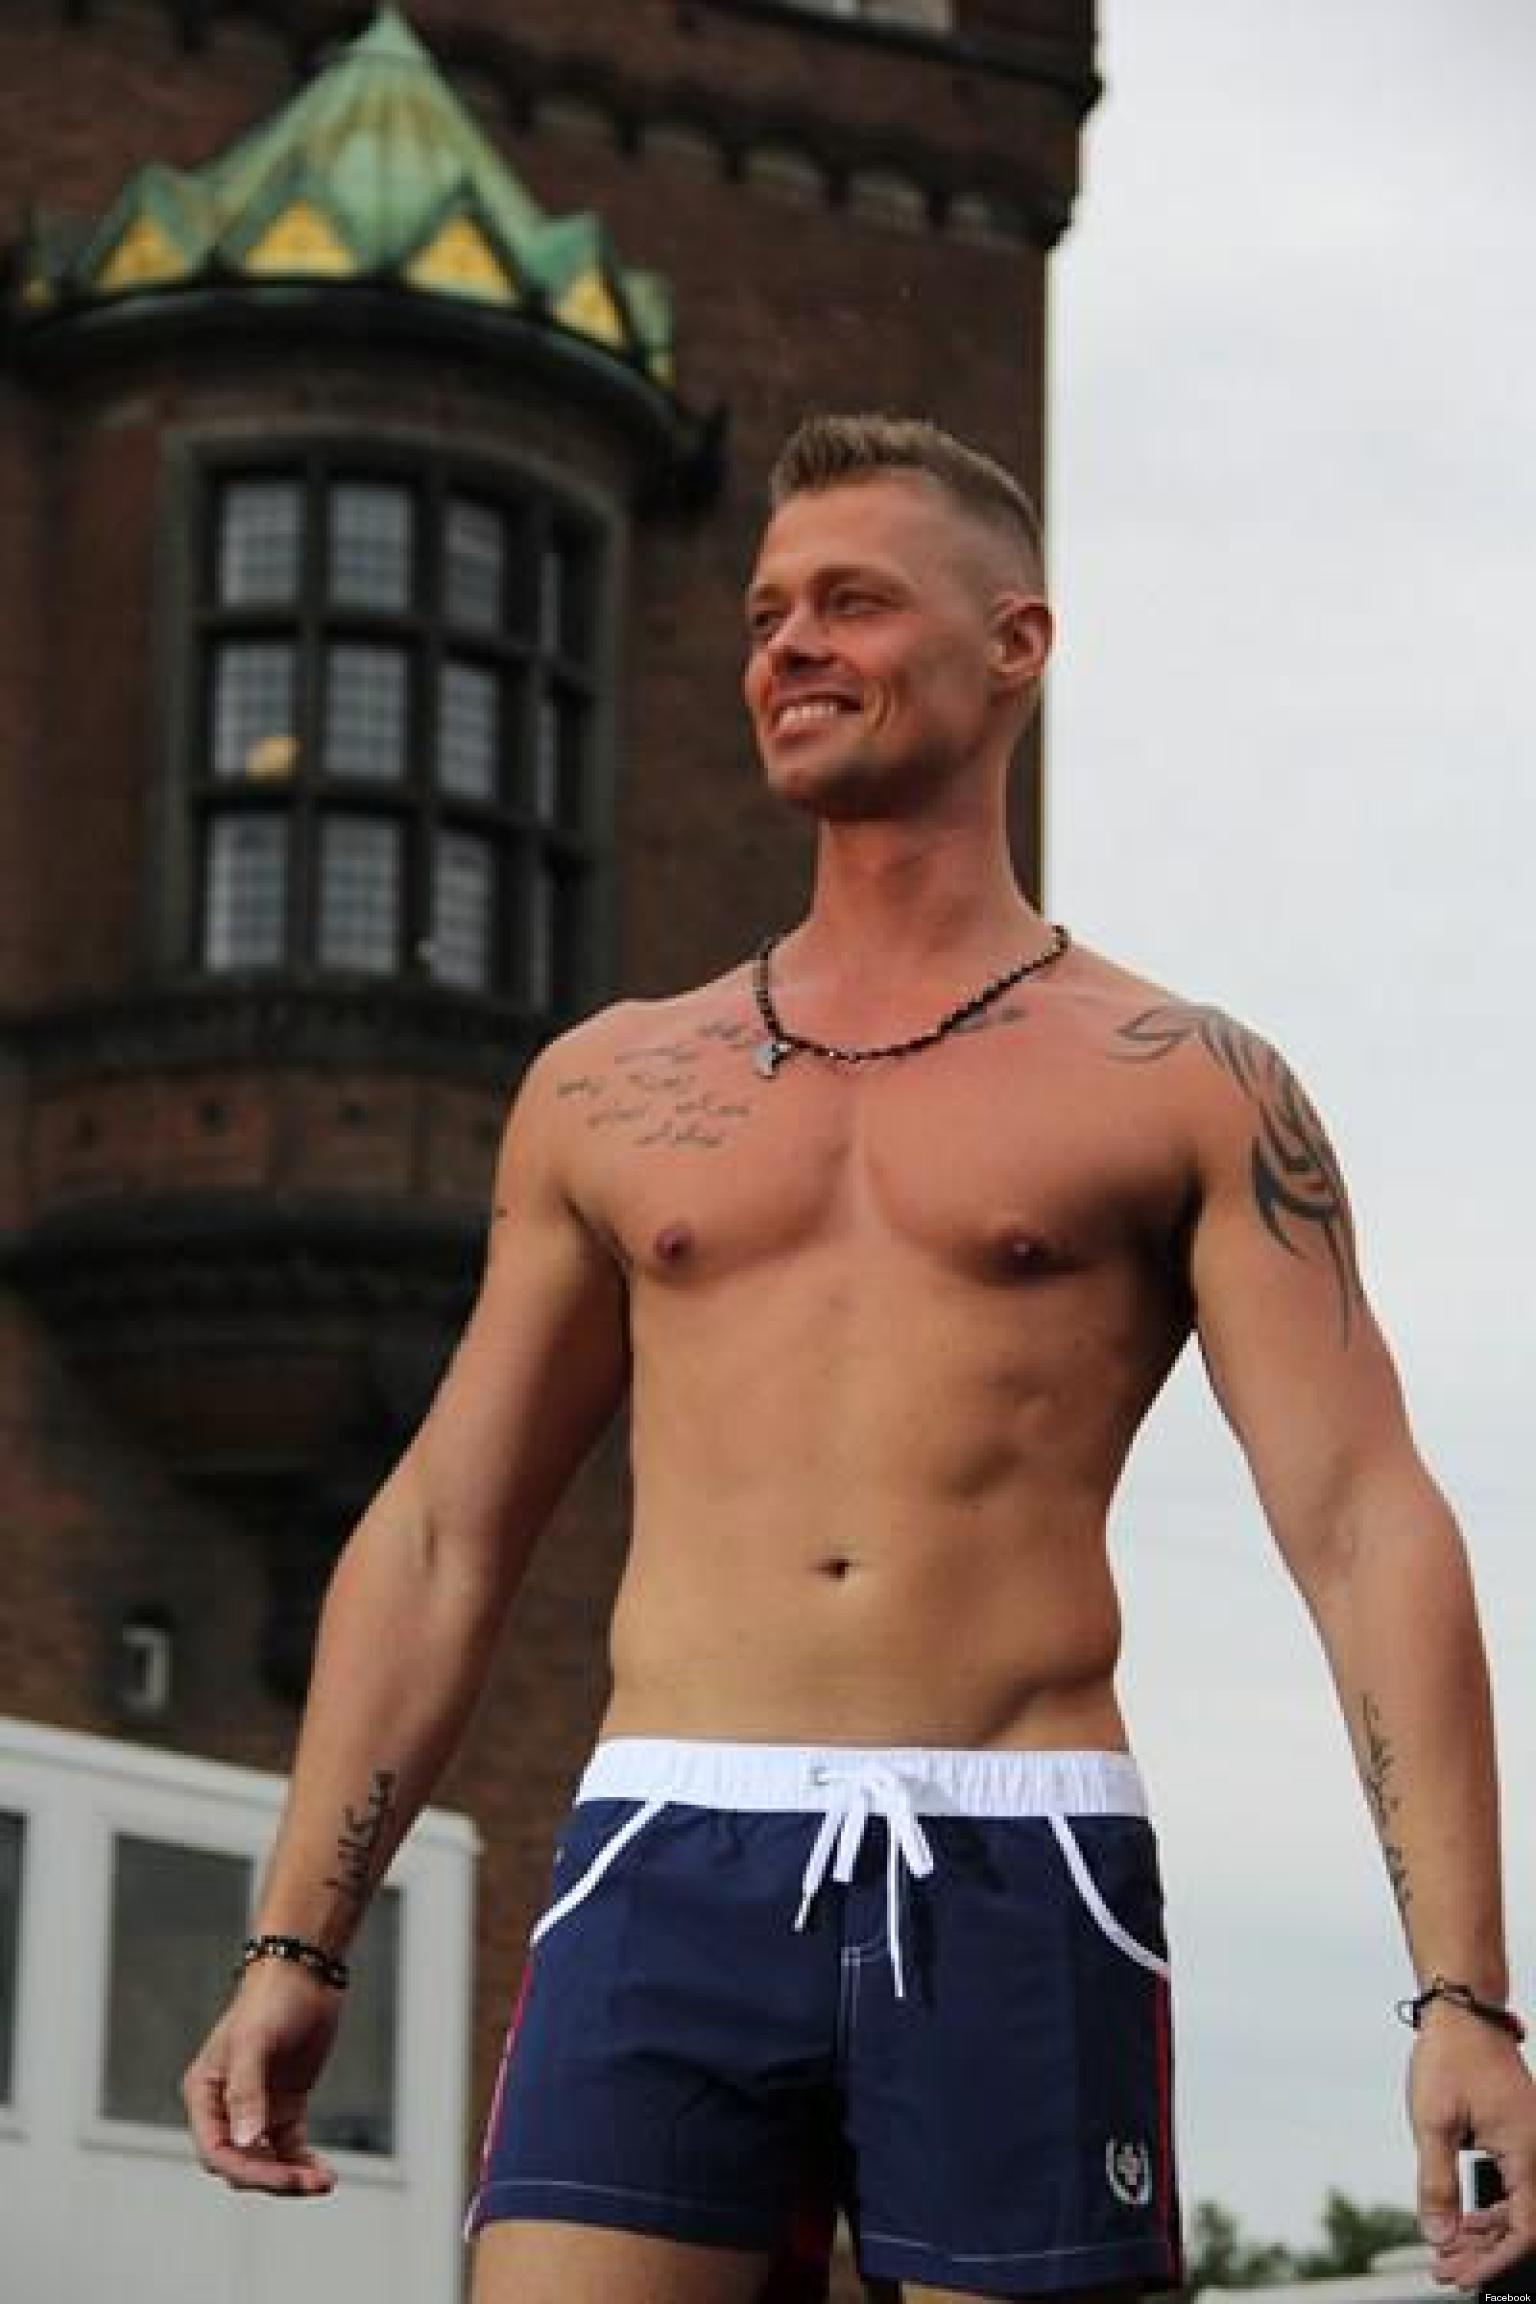 Michael Sinan, Mr. Gay Denmark 2012, On Being Out And Proud As A Muslim | HuffPost